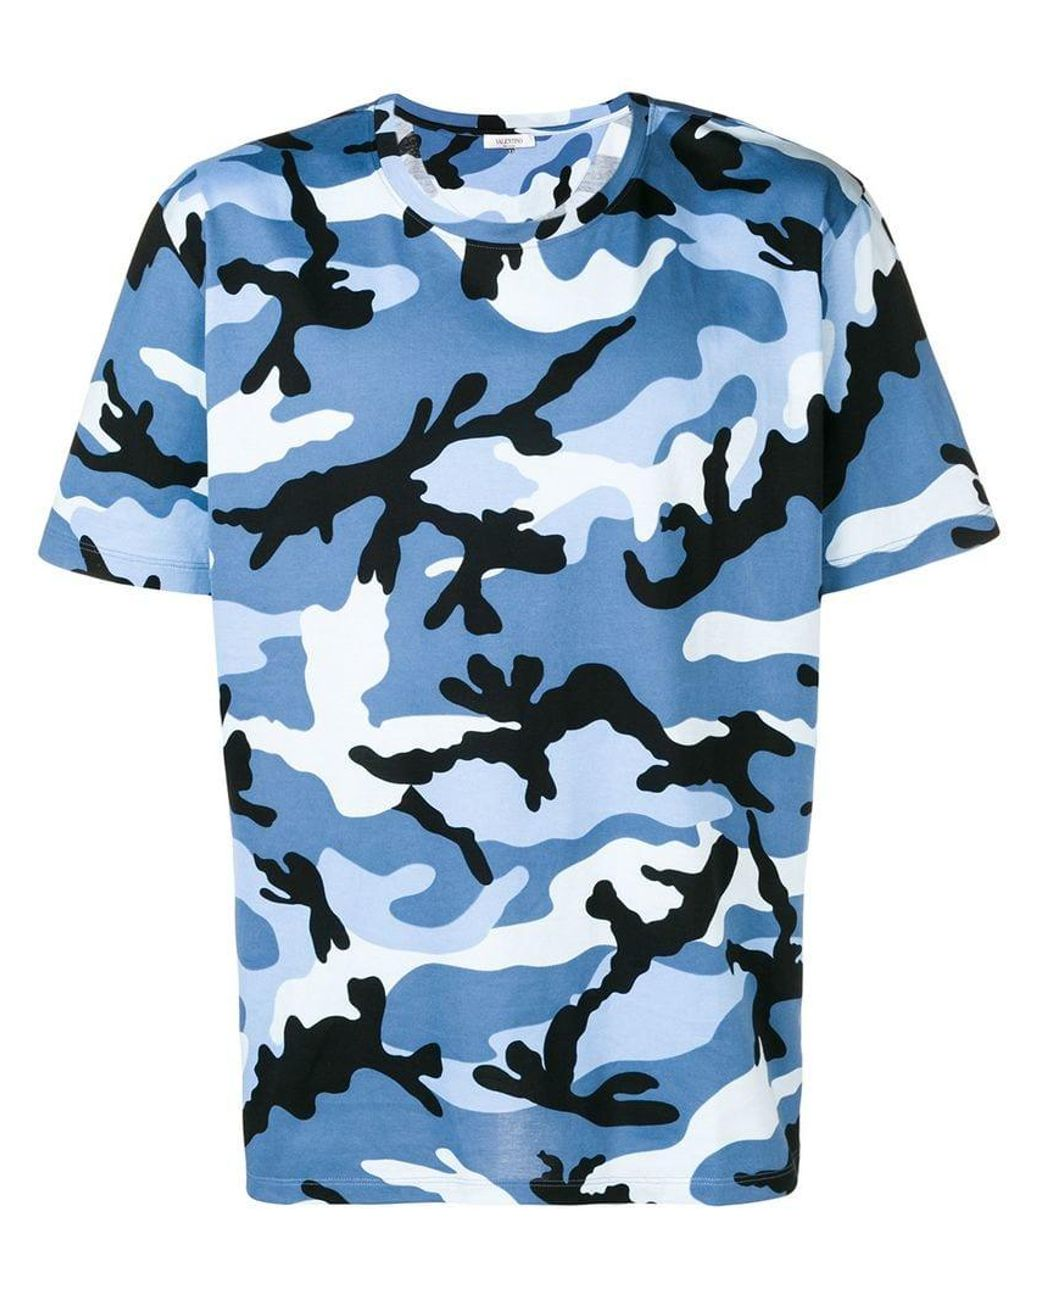 26747fa55f663 Valentino Camouflage Print T-shirt in Blue for Men - Lyst